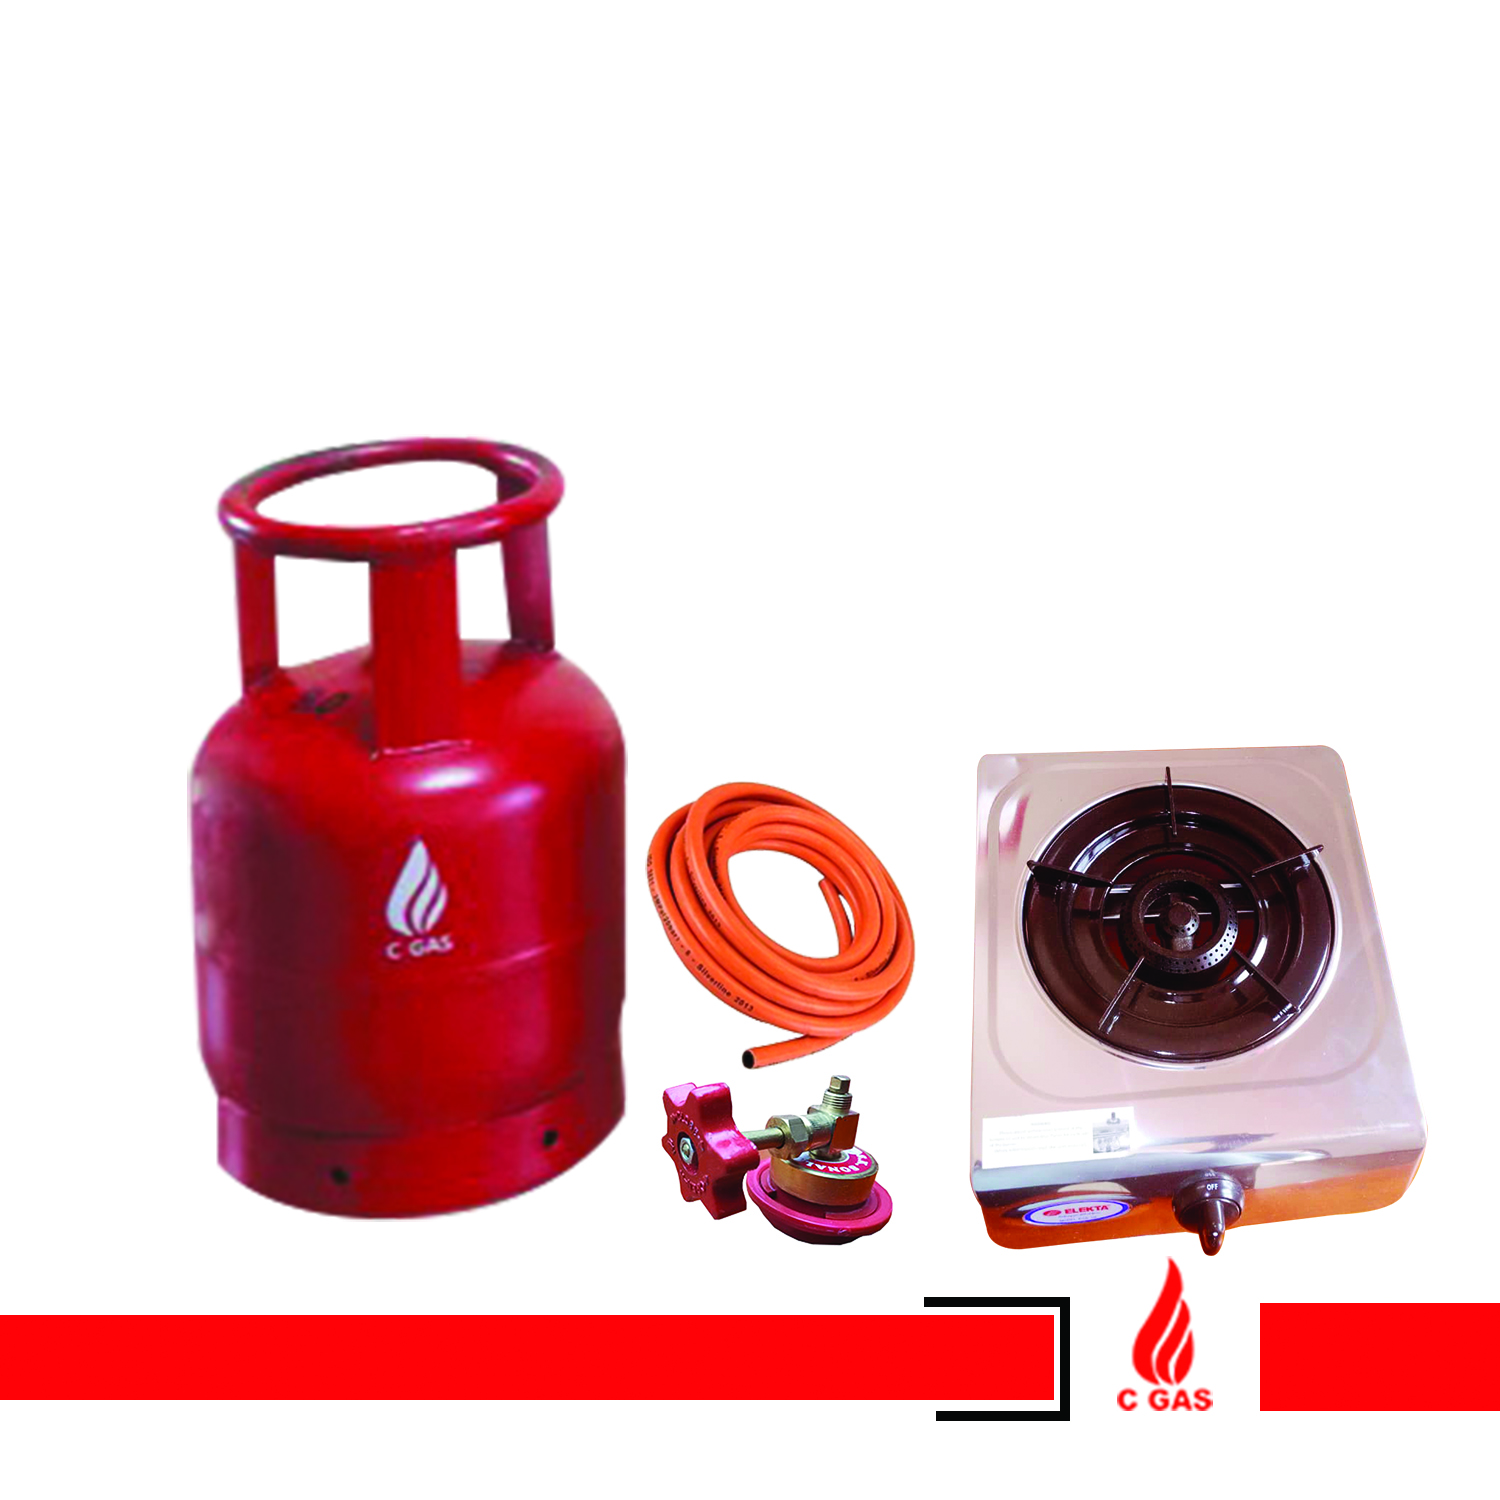 6Kg Gas Full Package ( Cylinder, Gas, Pipe, Regulator, Single Burner)